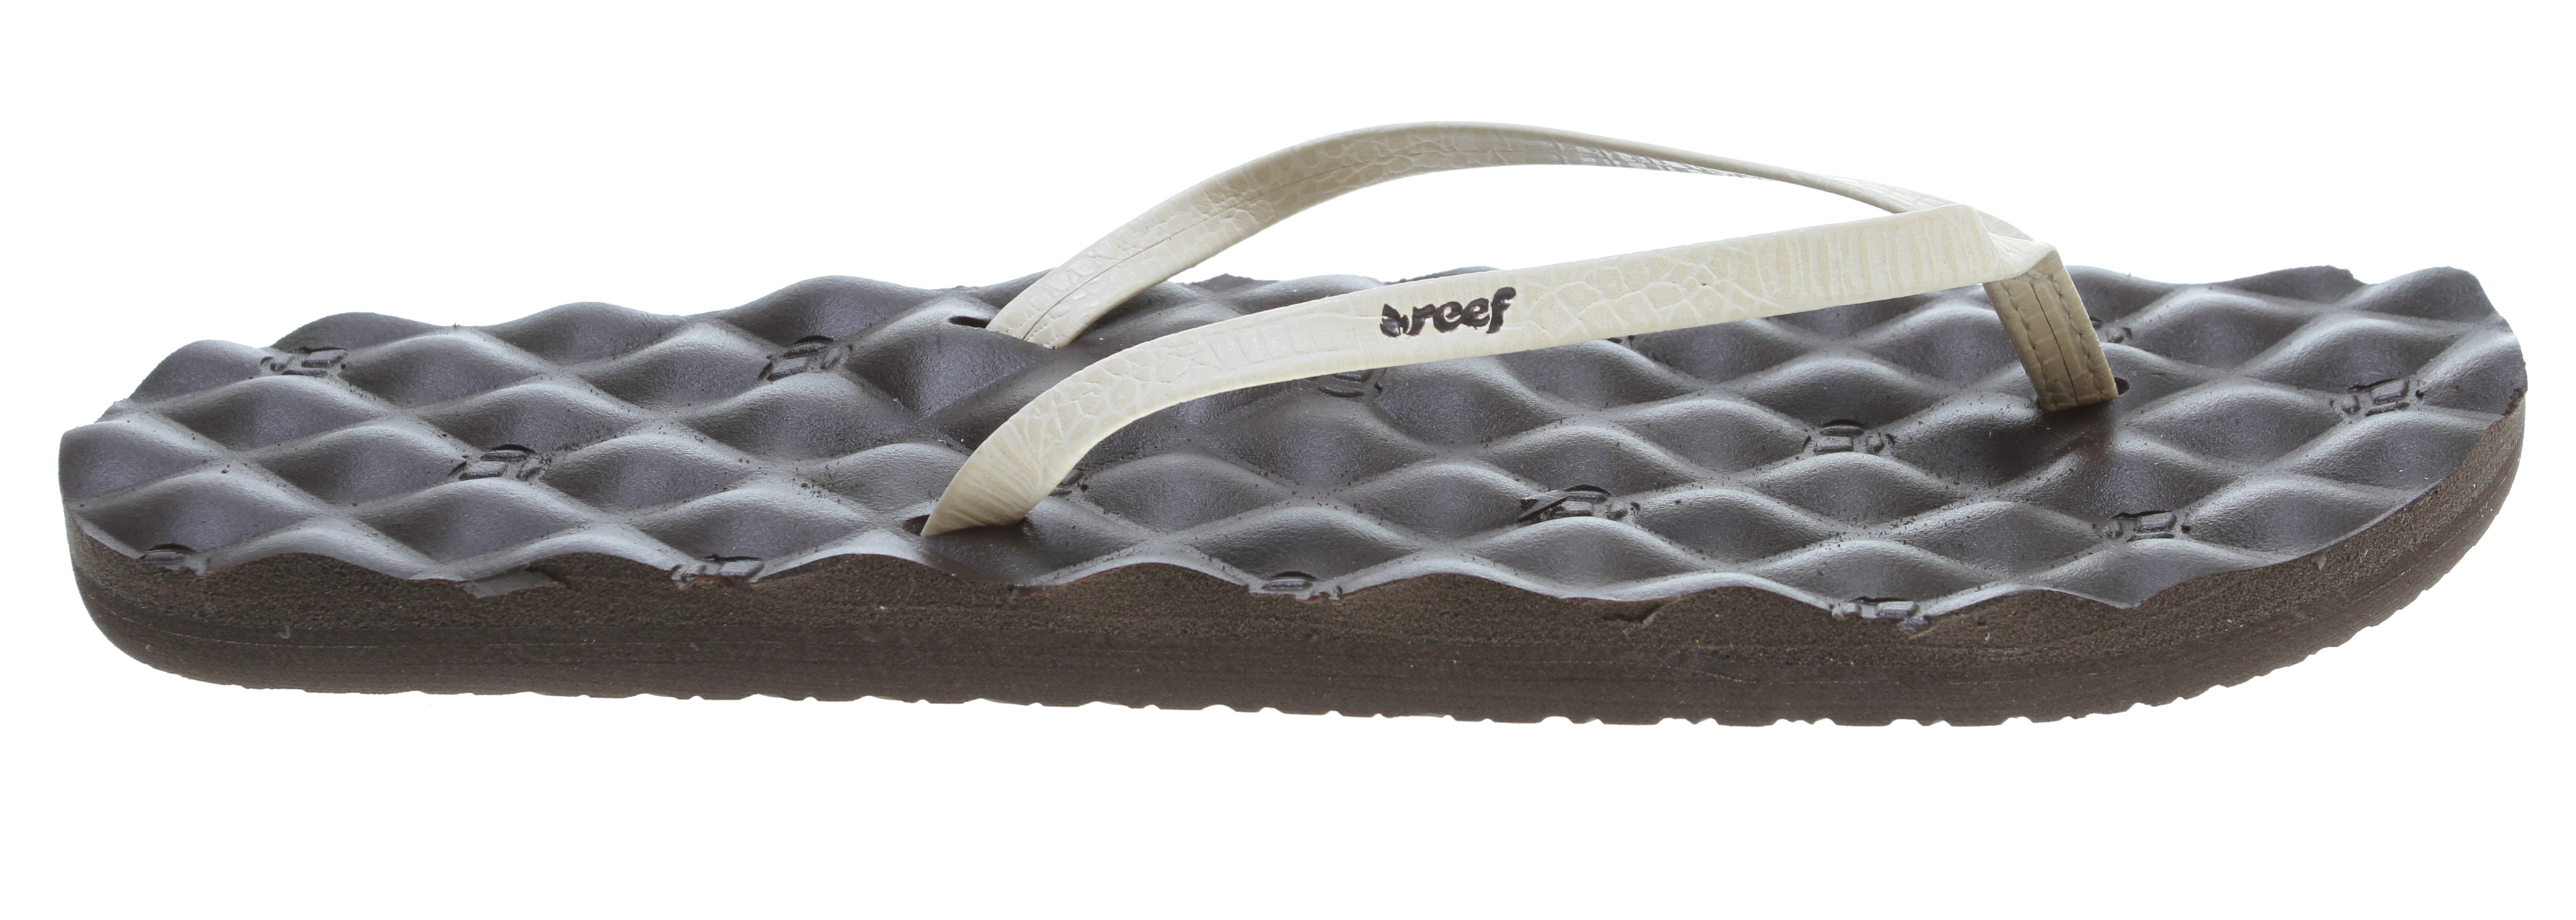 Surf Key Features of the Reef Uptown Dreams Sandals: So comfortable it's like you never left your bed Skinny, synthetic strap invarious exotic patterns Mattress-inspired quilted PU foam footbed with anatomical arch support Rubber sponge outsole for flexibility PVC free - $21.95